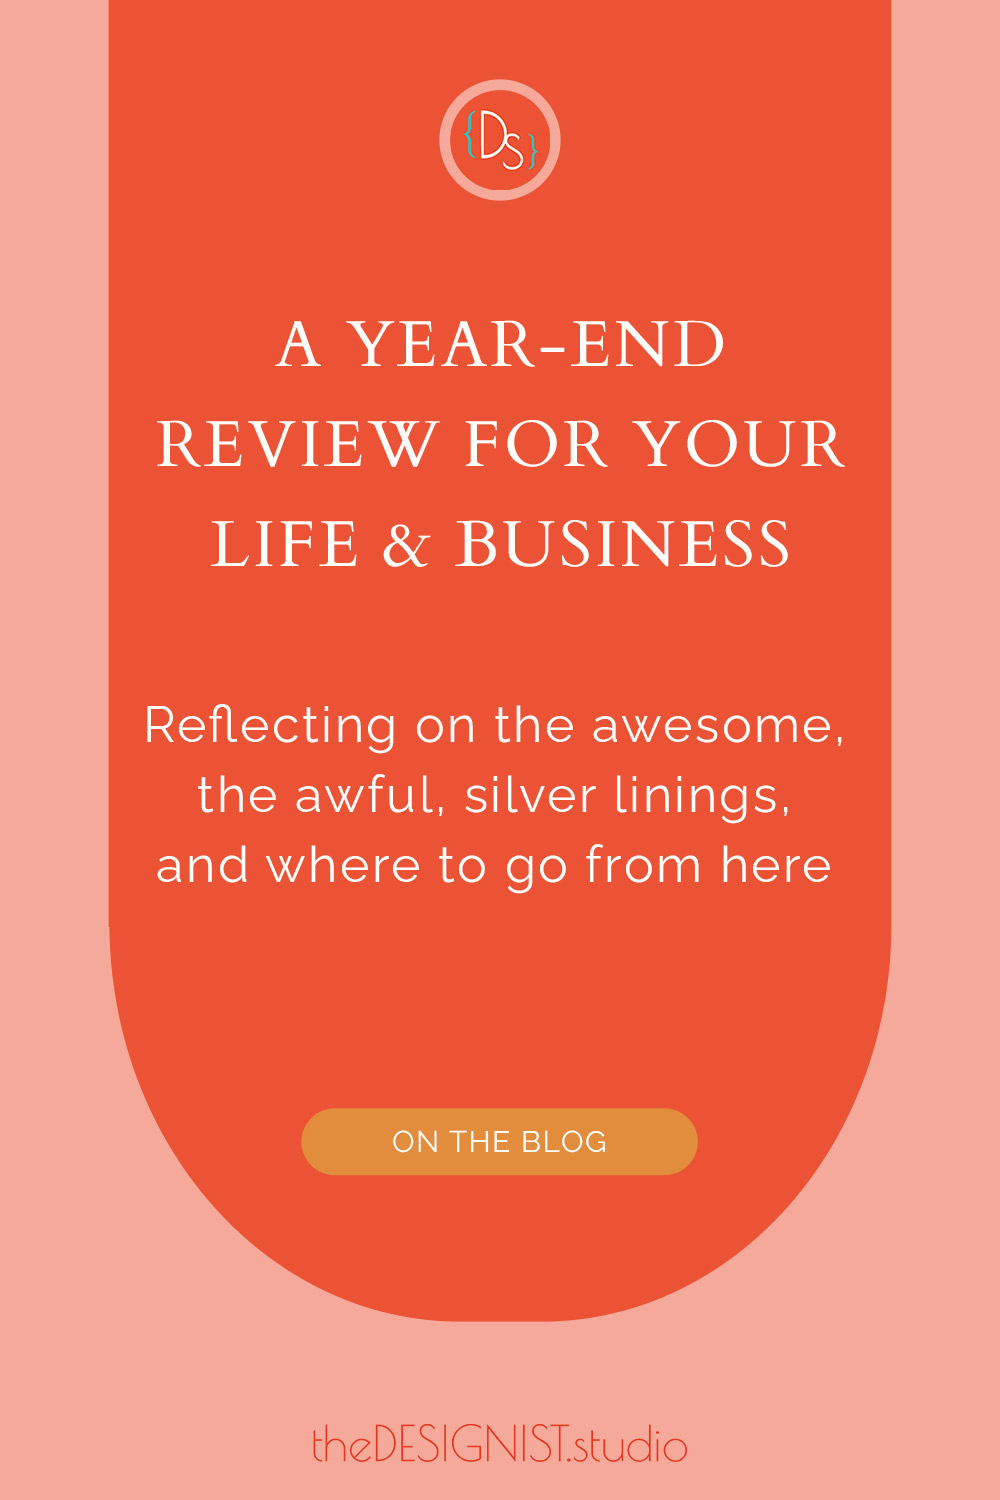 A Year-End Review for Your Life & Business